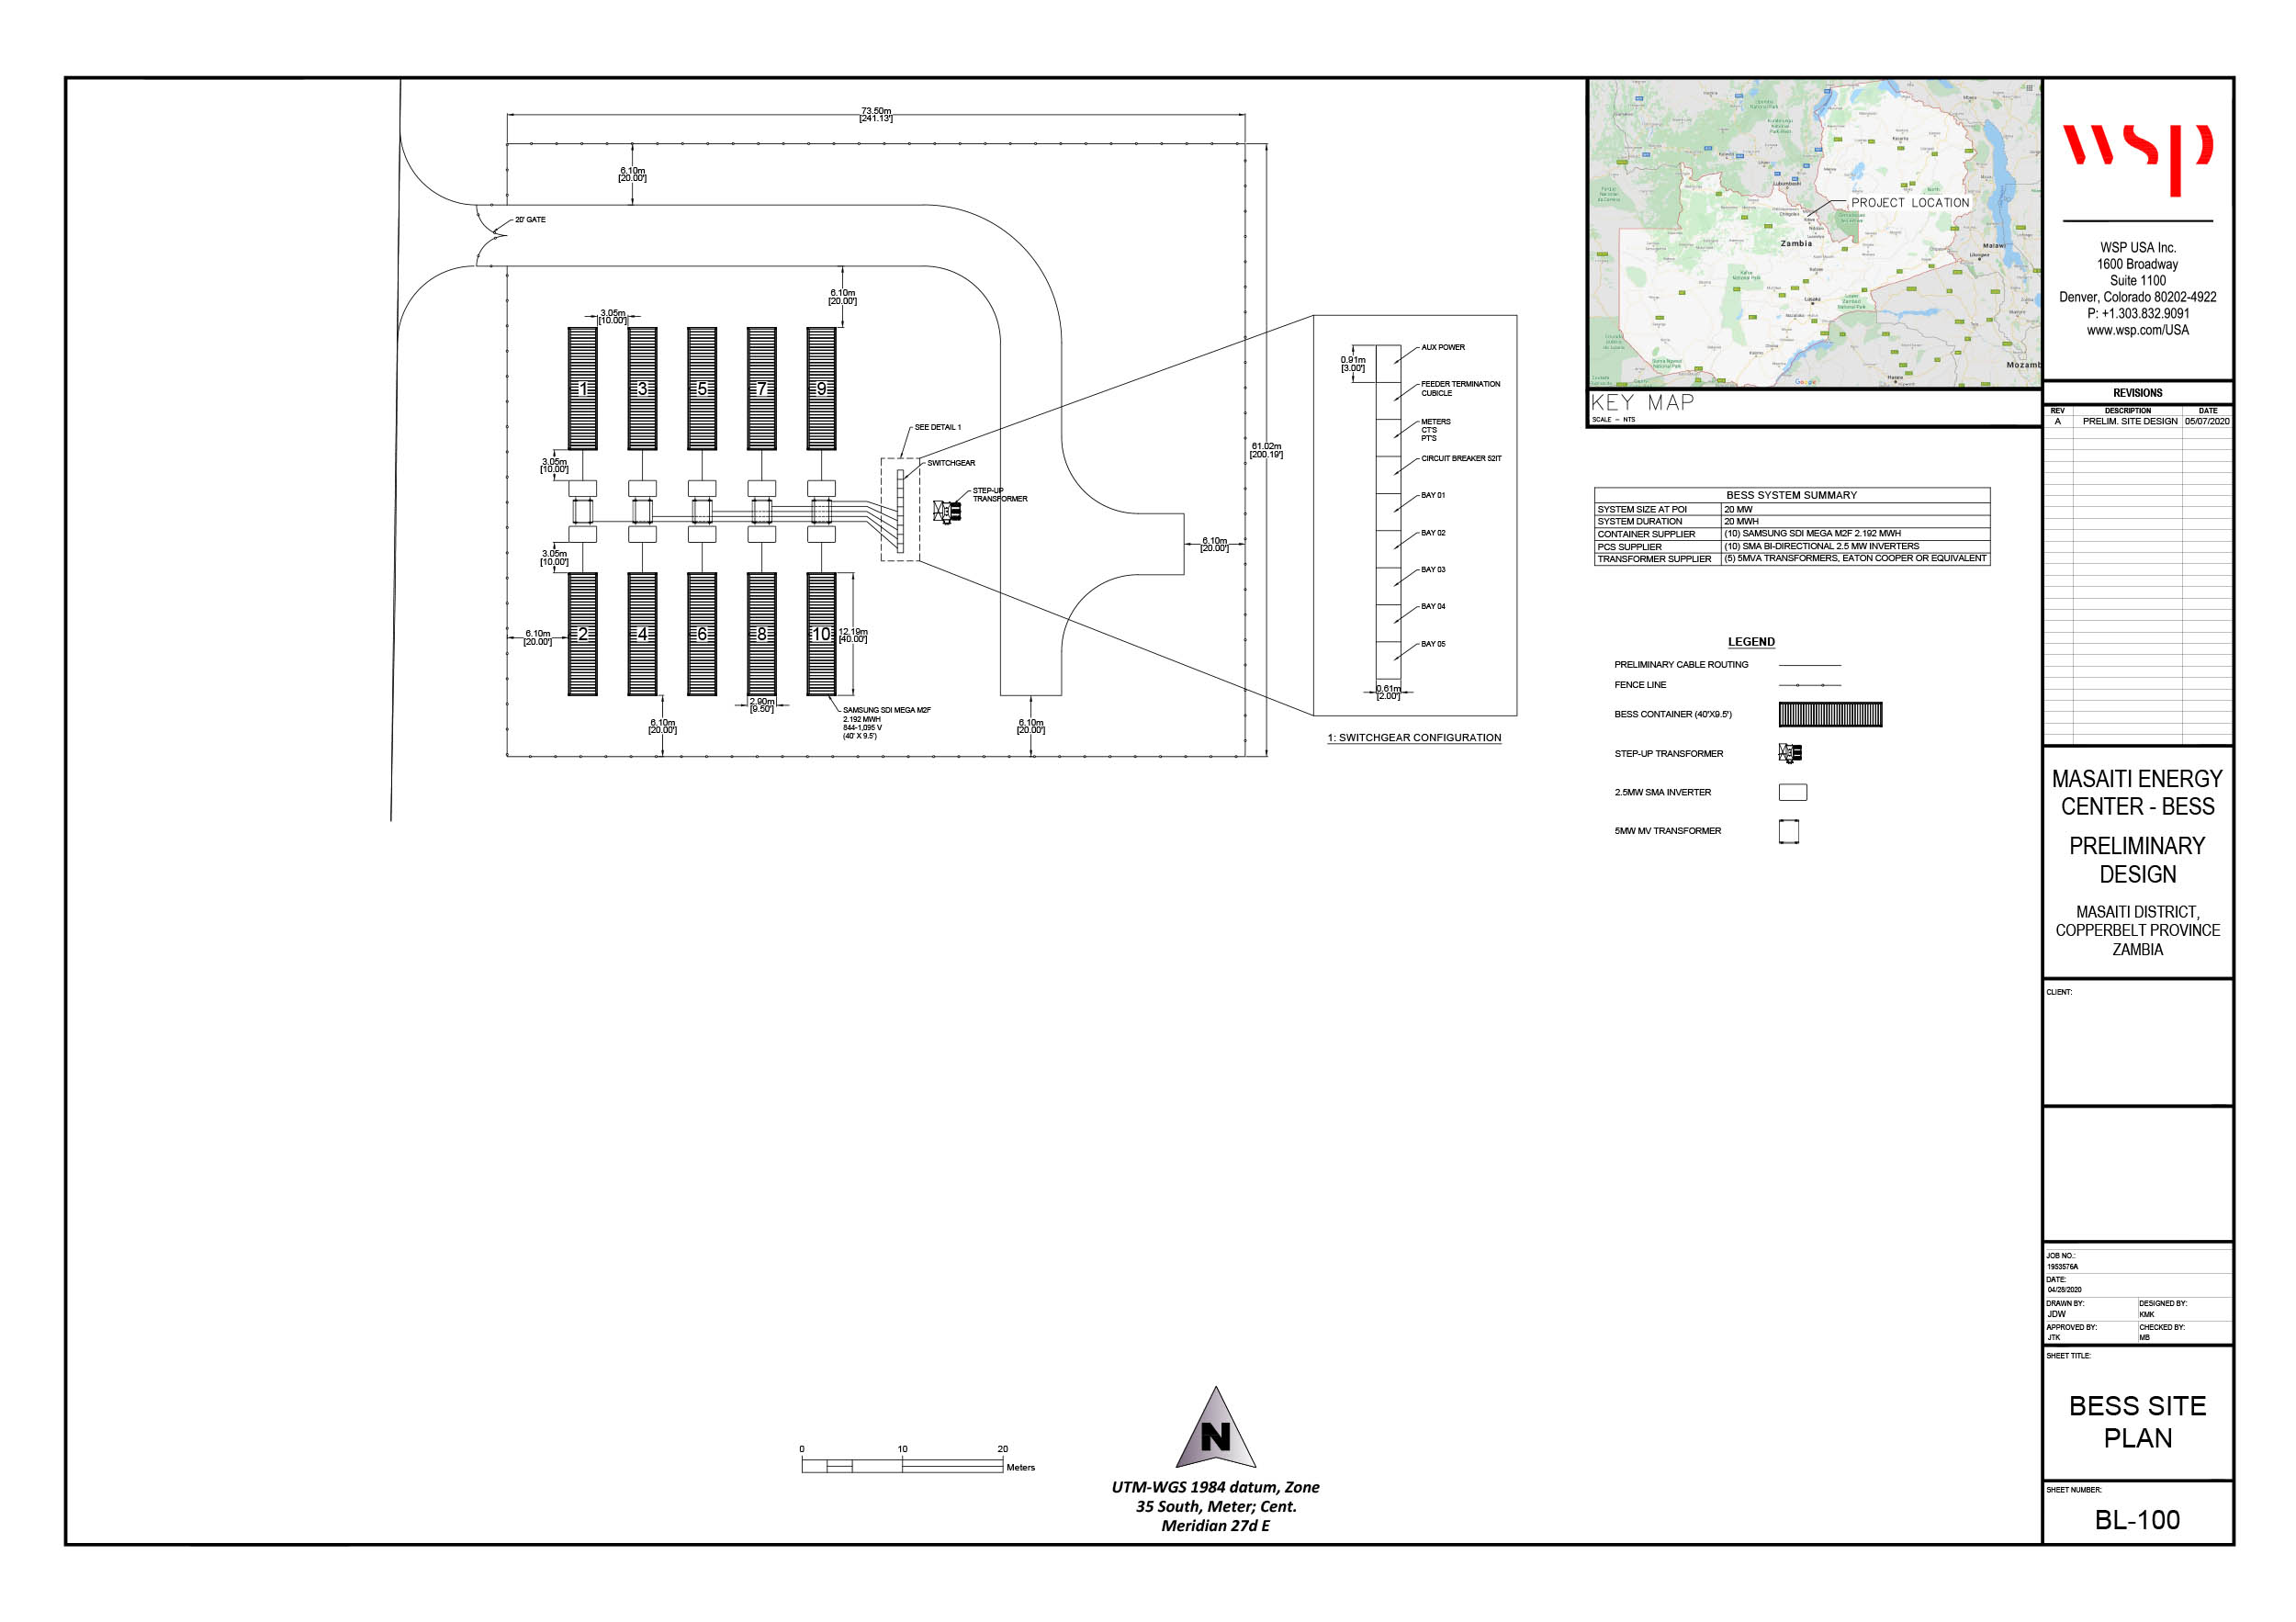 This is a preliminary battery energy storage system (BESS) layout. This BESS will be co-located with the solar farm.